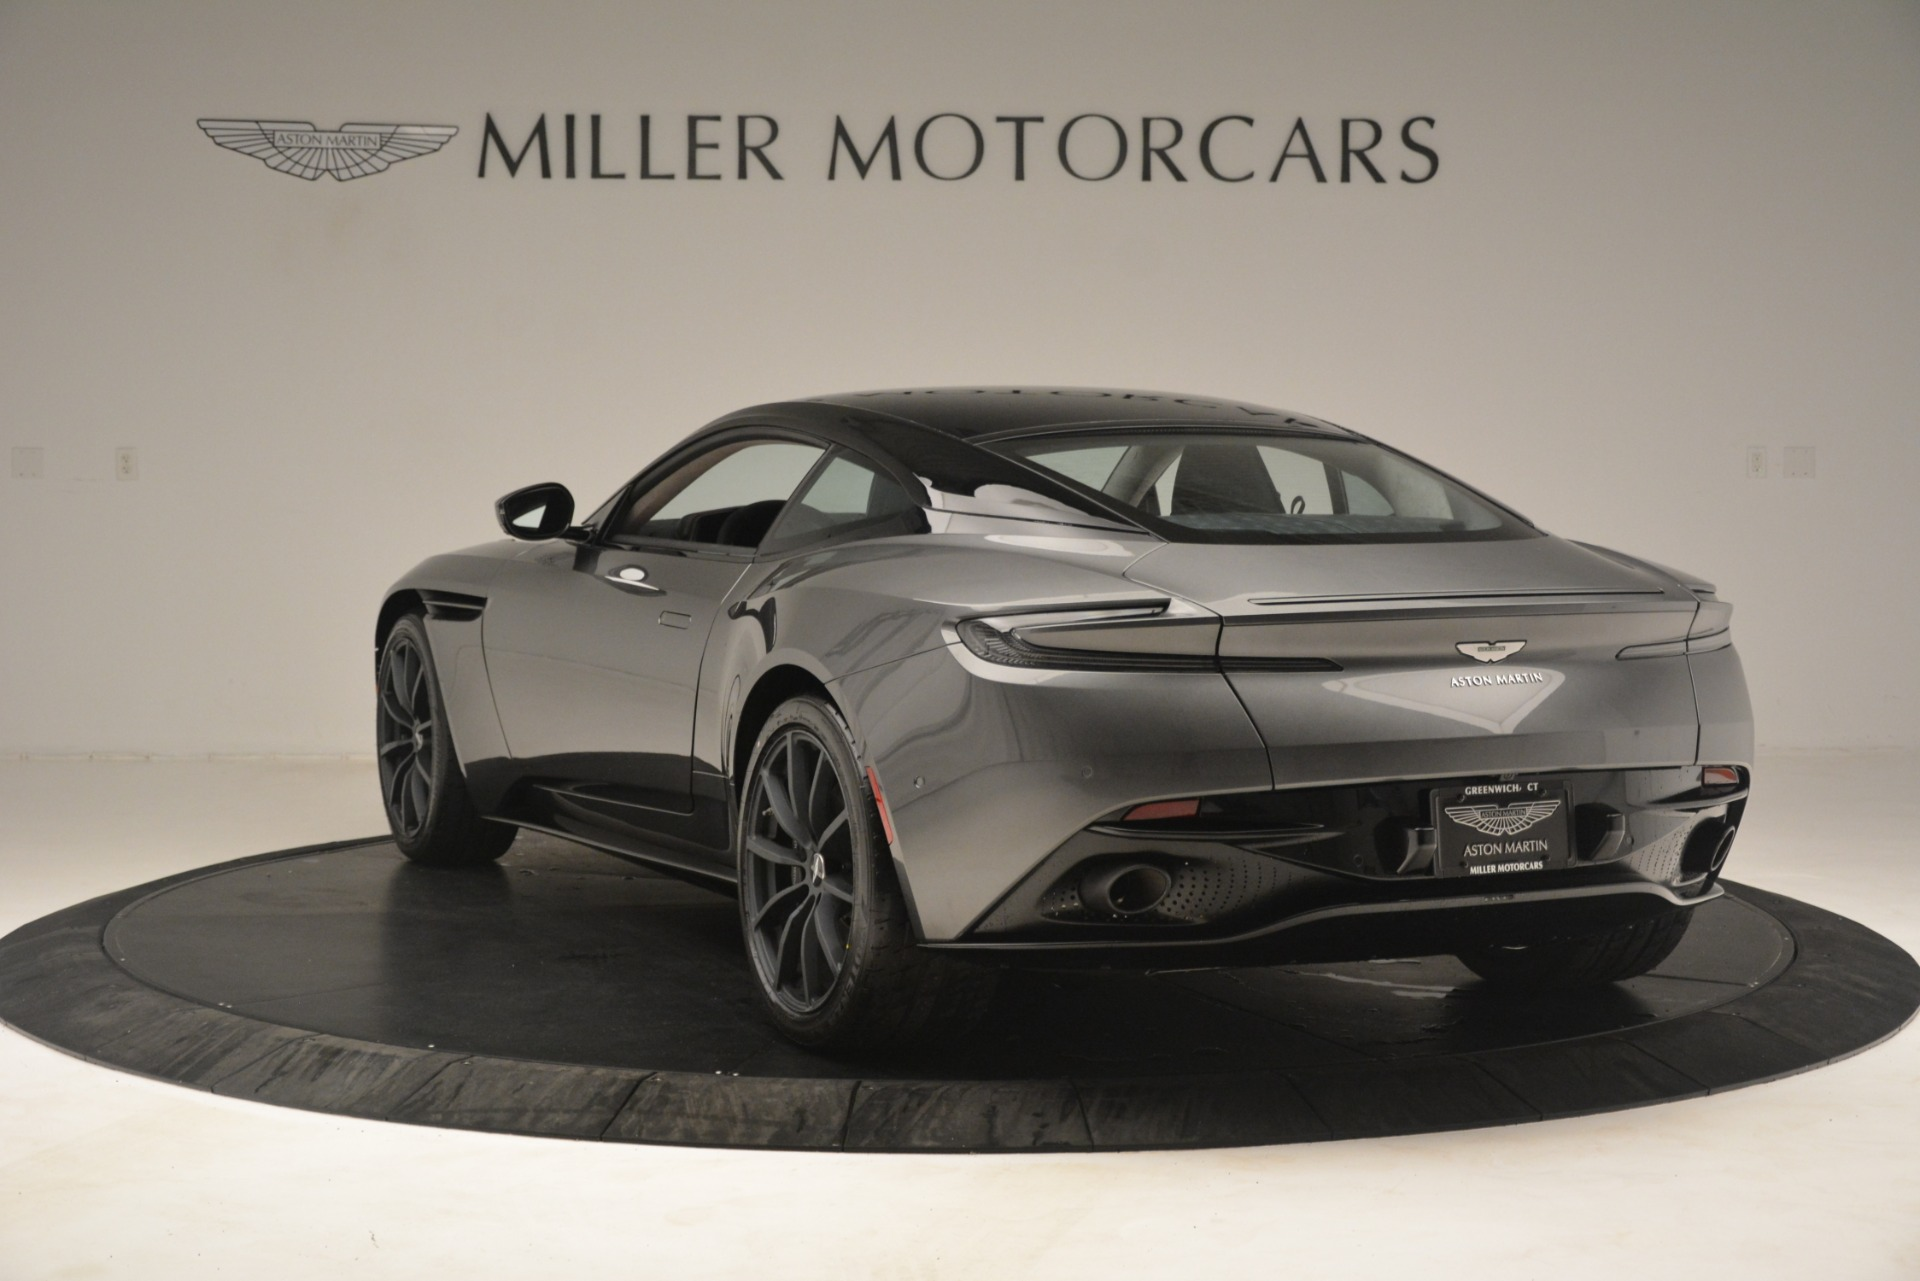 New 2019 Aston Martin DB11 V12 AMR Coupe For Sale In Westport, CT 3123_p5